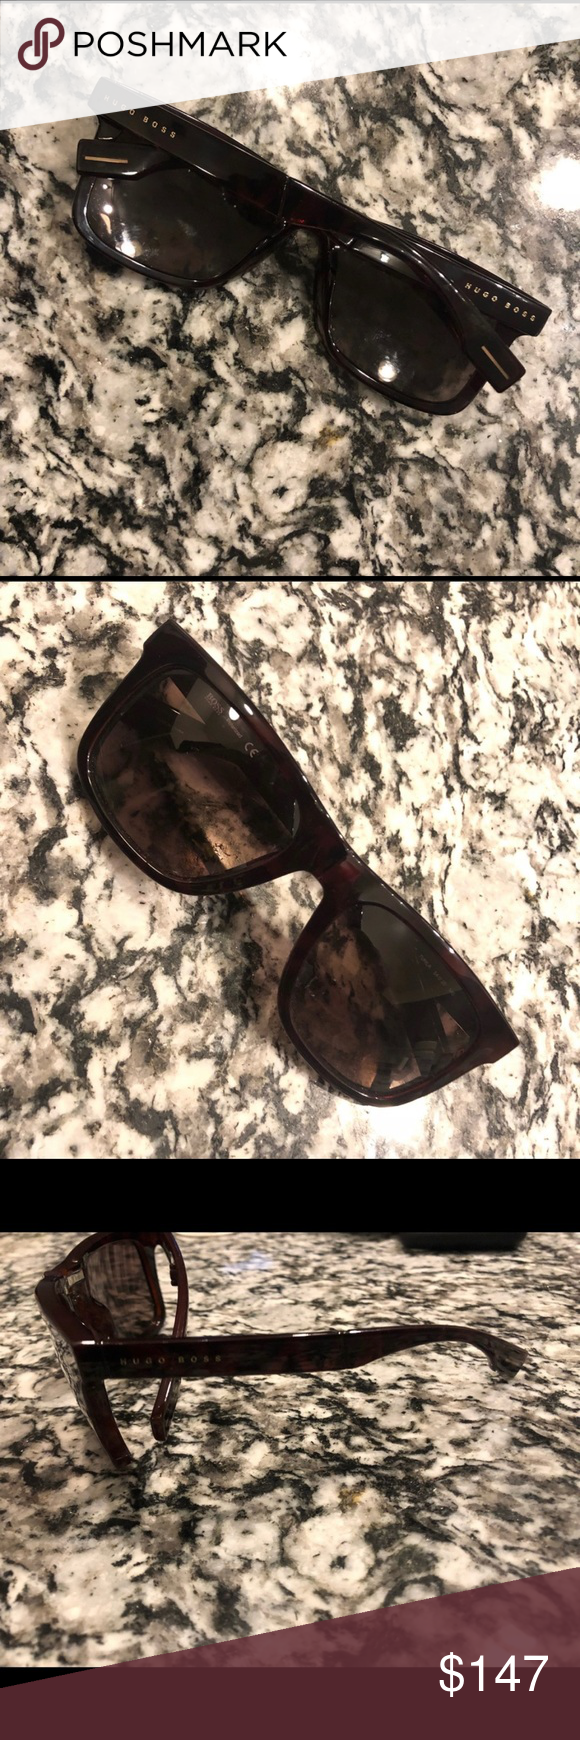 af6694222c82 Hugo Boss Dark Brown Tortoise Sunglasses BOSS 0446/S. Brand New Hugo Boss  Accessories Sunglasses